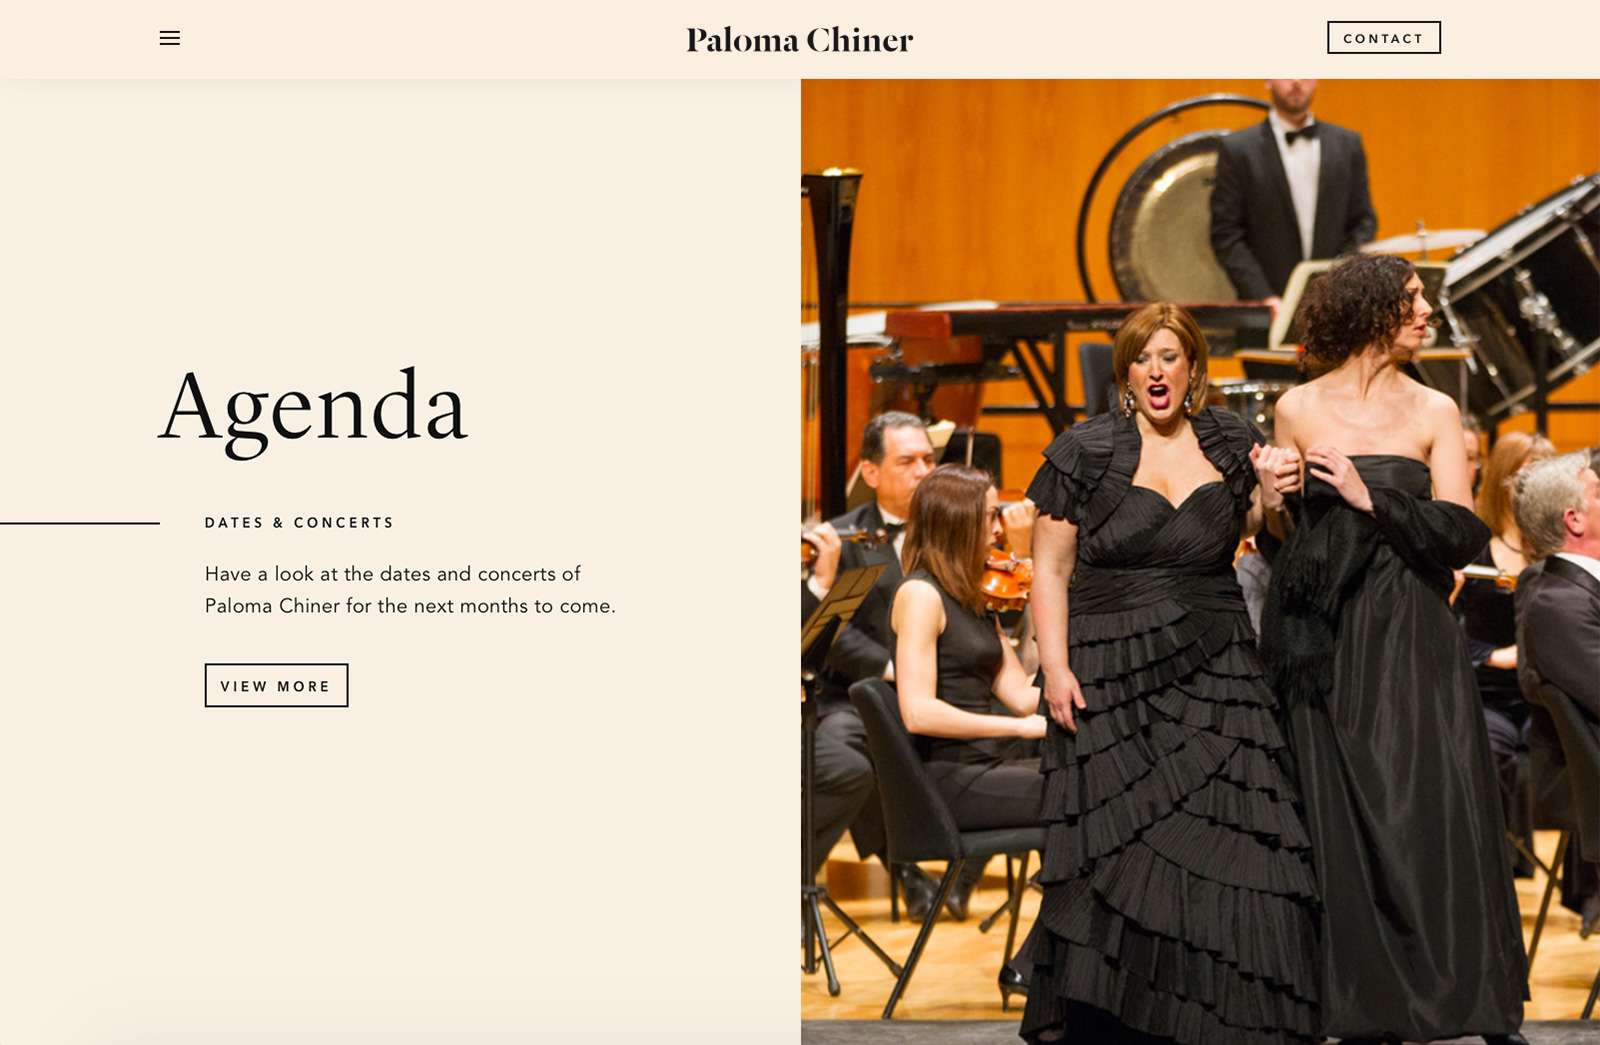 Paloma Chiner Soprano - Design and development of the new website